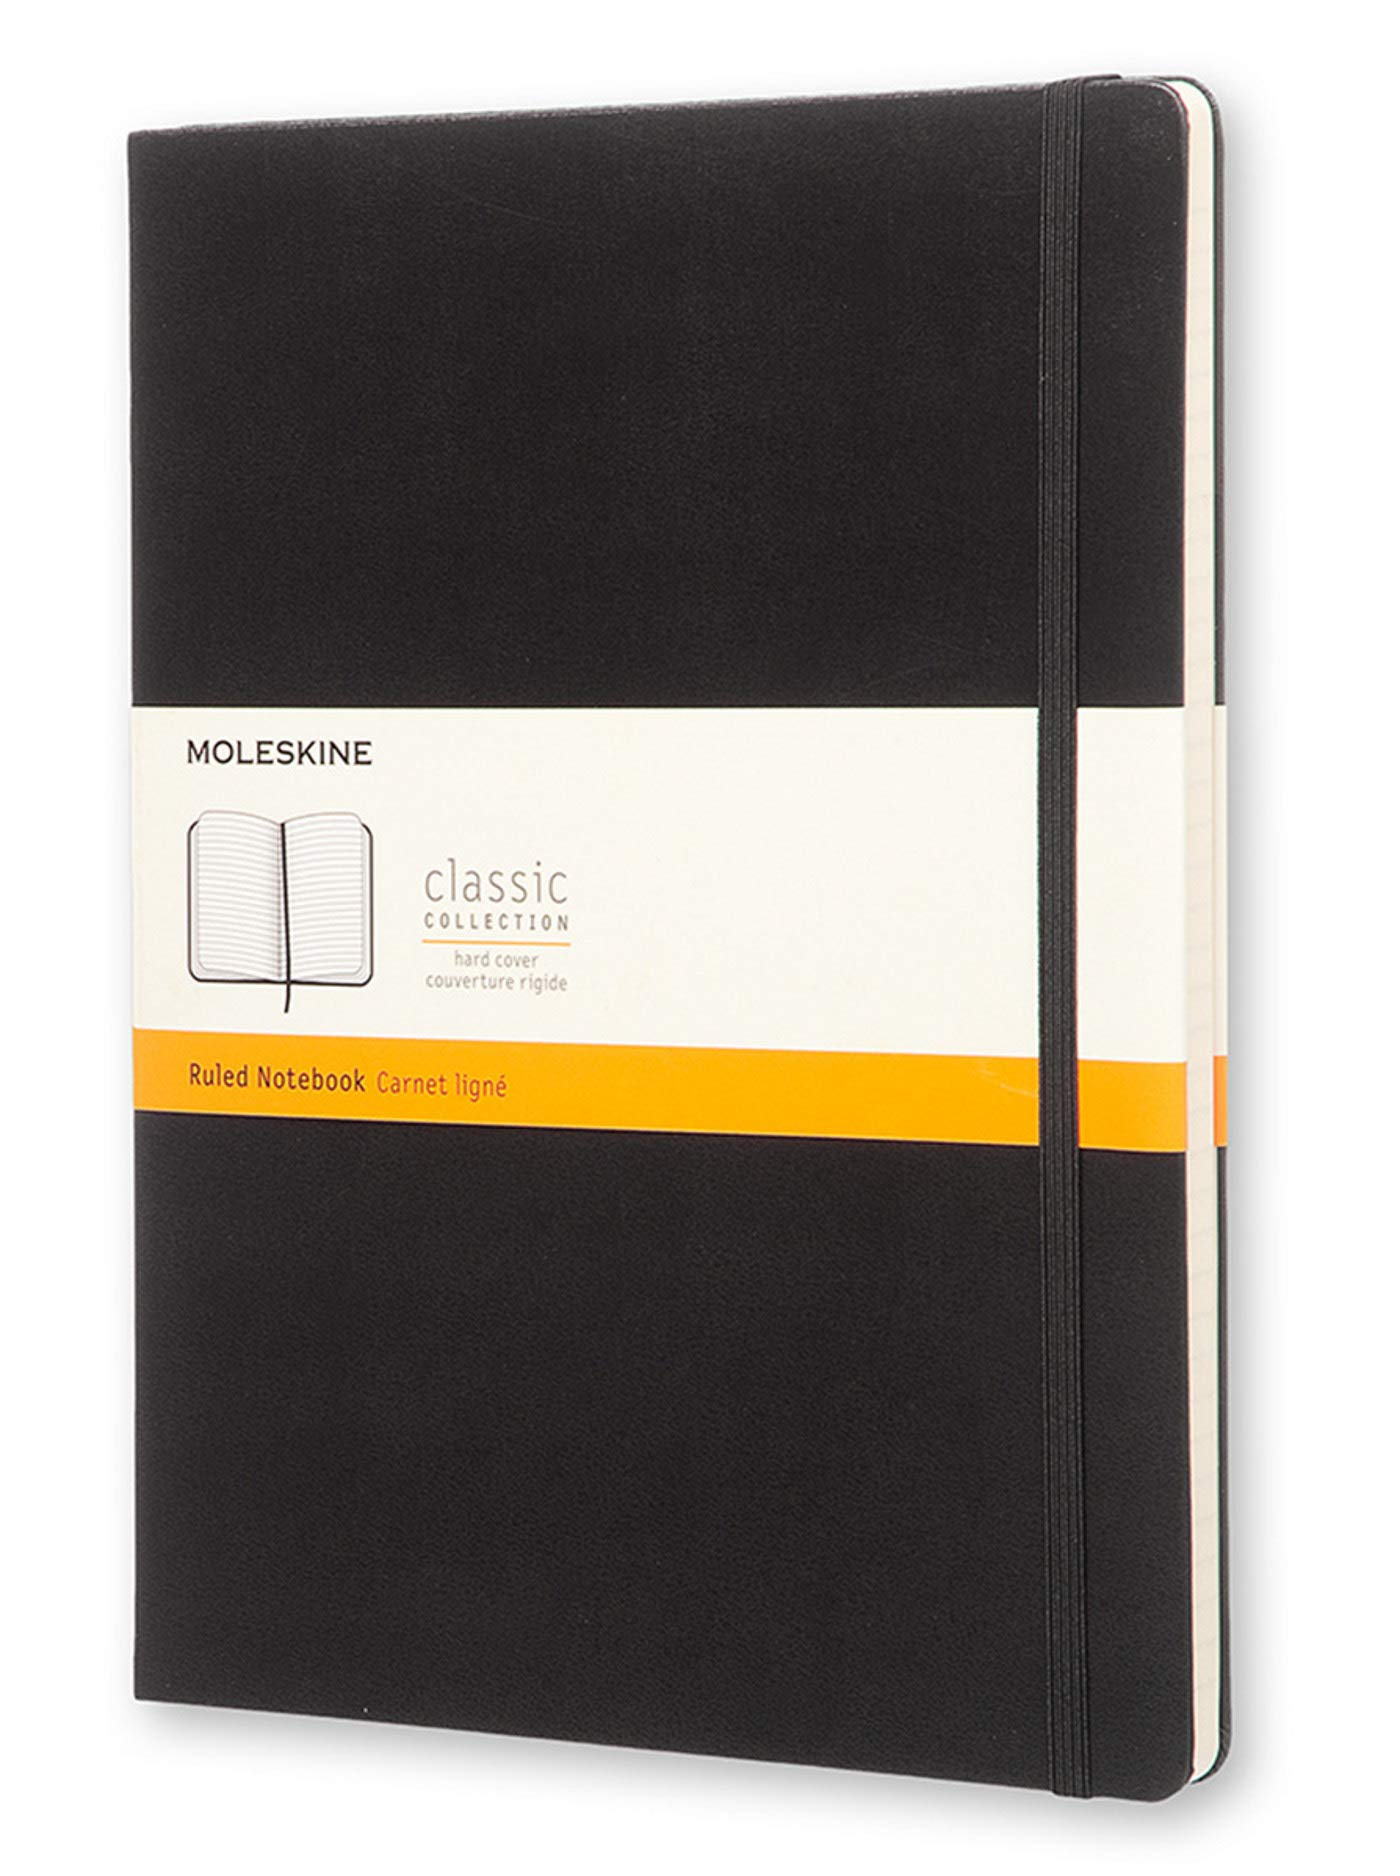 Moleskine Classic Notebook, Hard Cover, XL (7.5'' x 9.5'') Ruled/Lined, Black by Moleskine